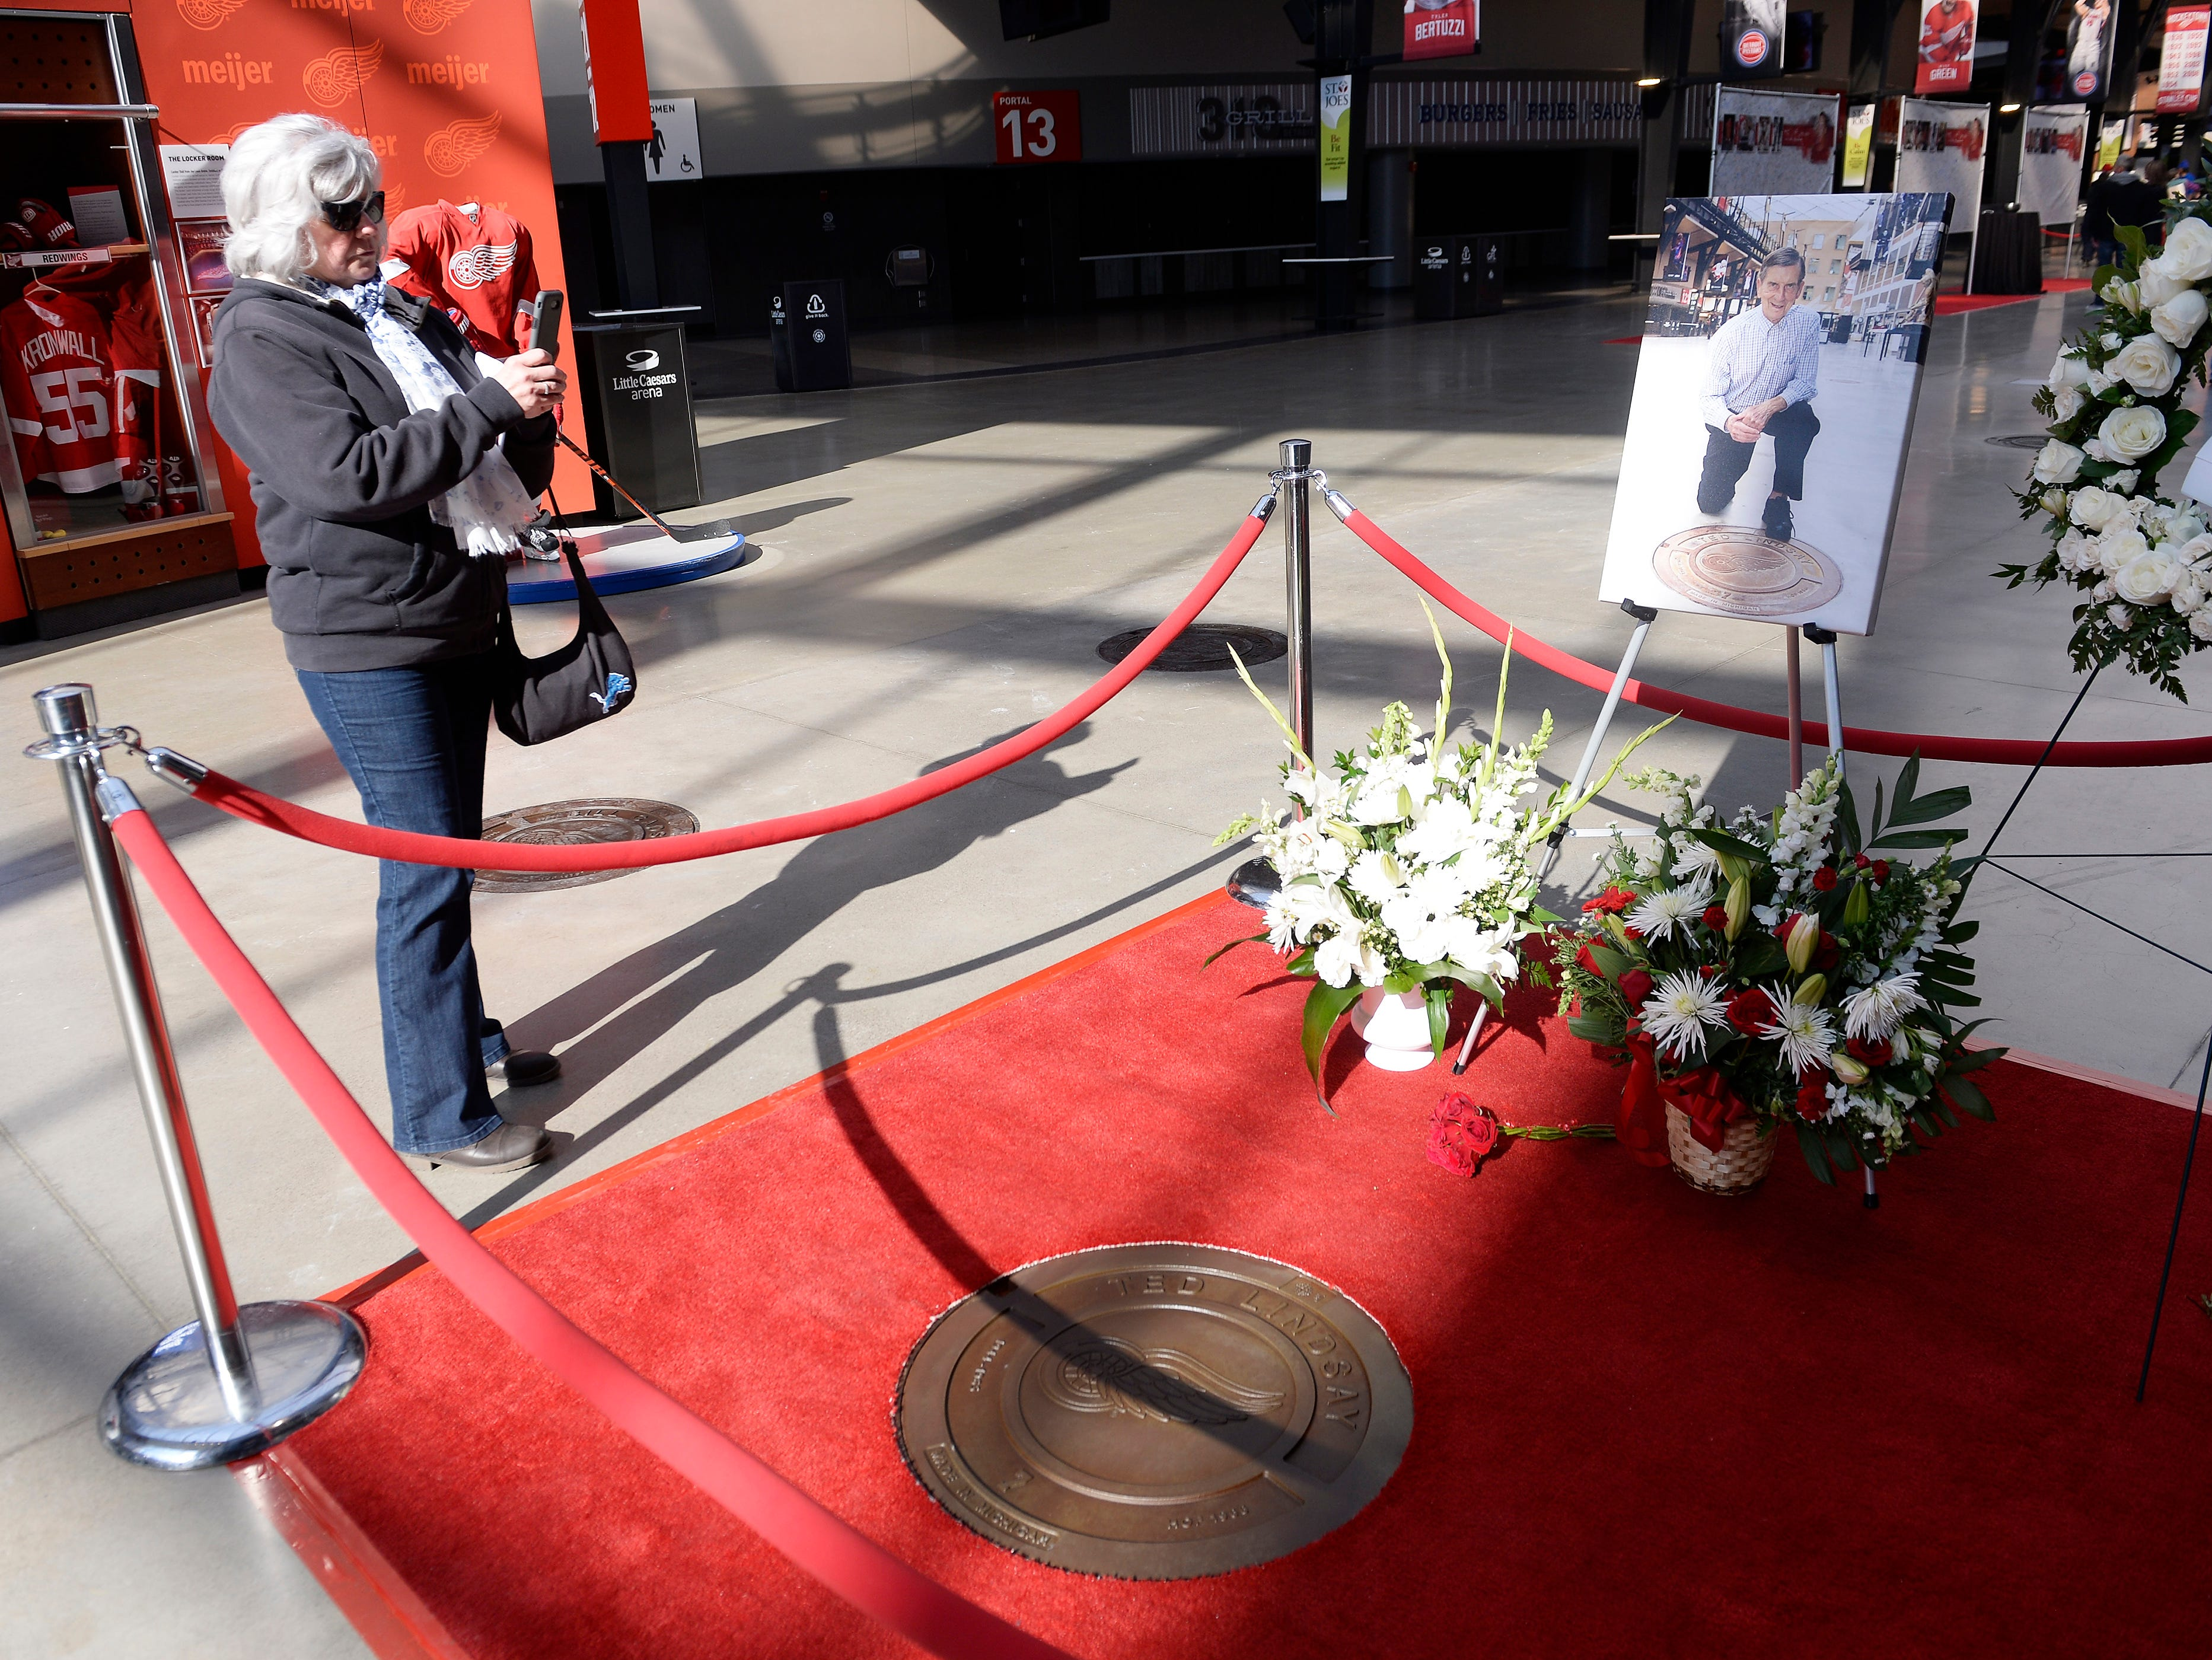 Barbara O'Connor, 61, of Dearborn takes a photo of the Ted Lindsay's commemorative manhole cover at Little Caesars Arena, one of several paying tribute to great players of the past.